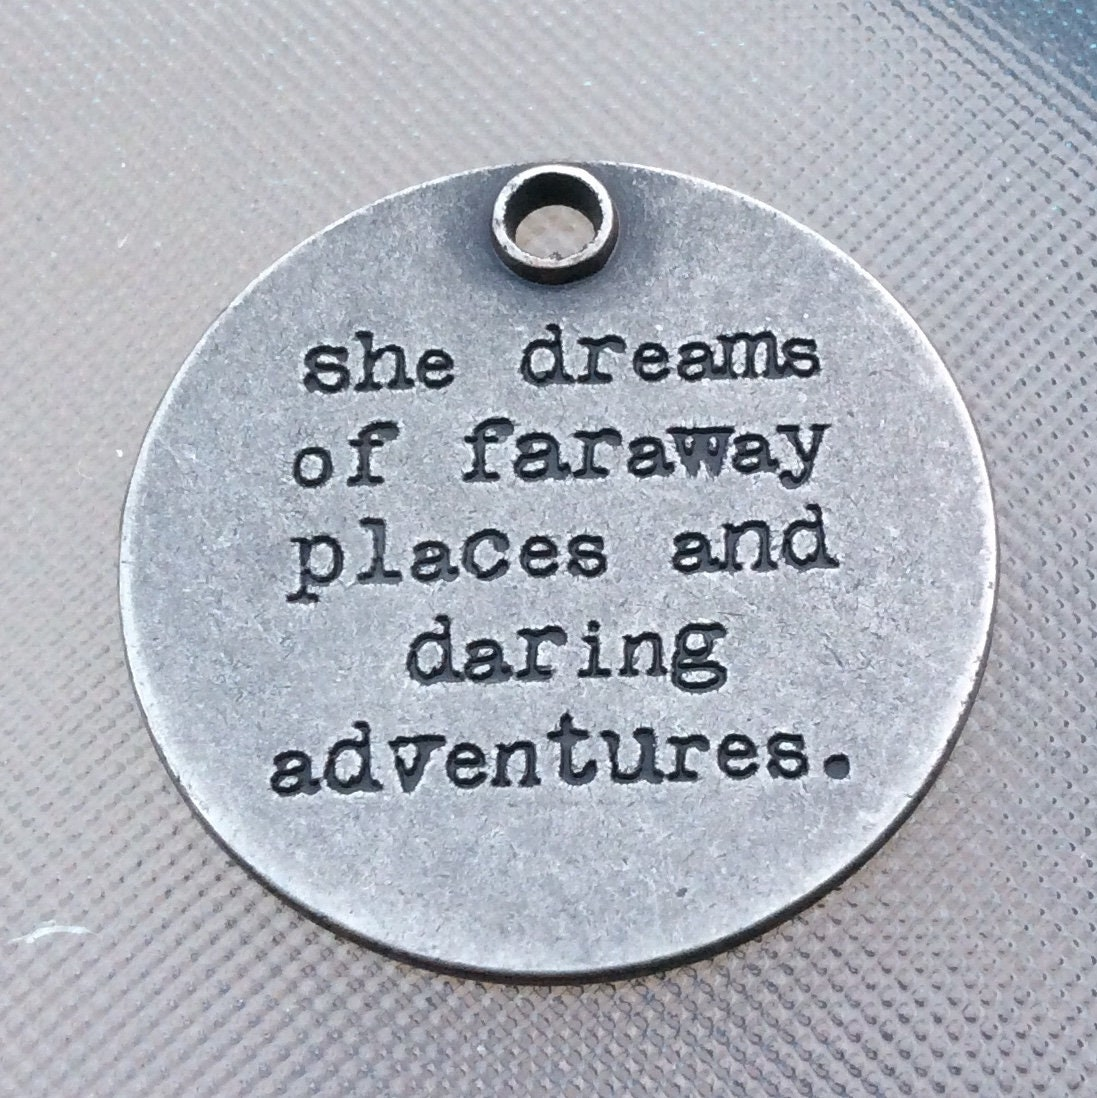 She dreams of faraway places and daring adventures beaded purse charm for handbag laptop bag charm for her gift under 20 dreamer charms